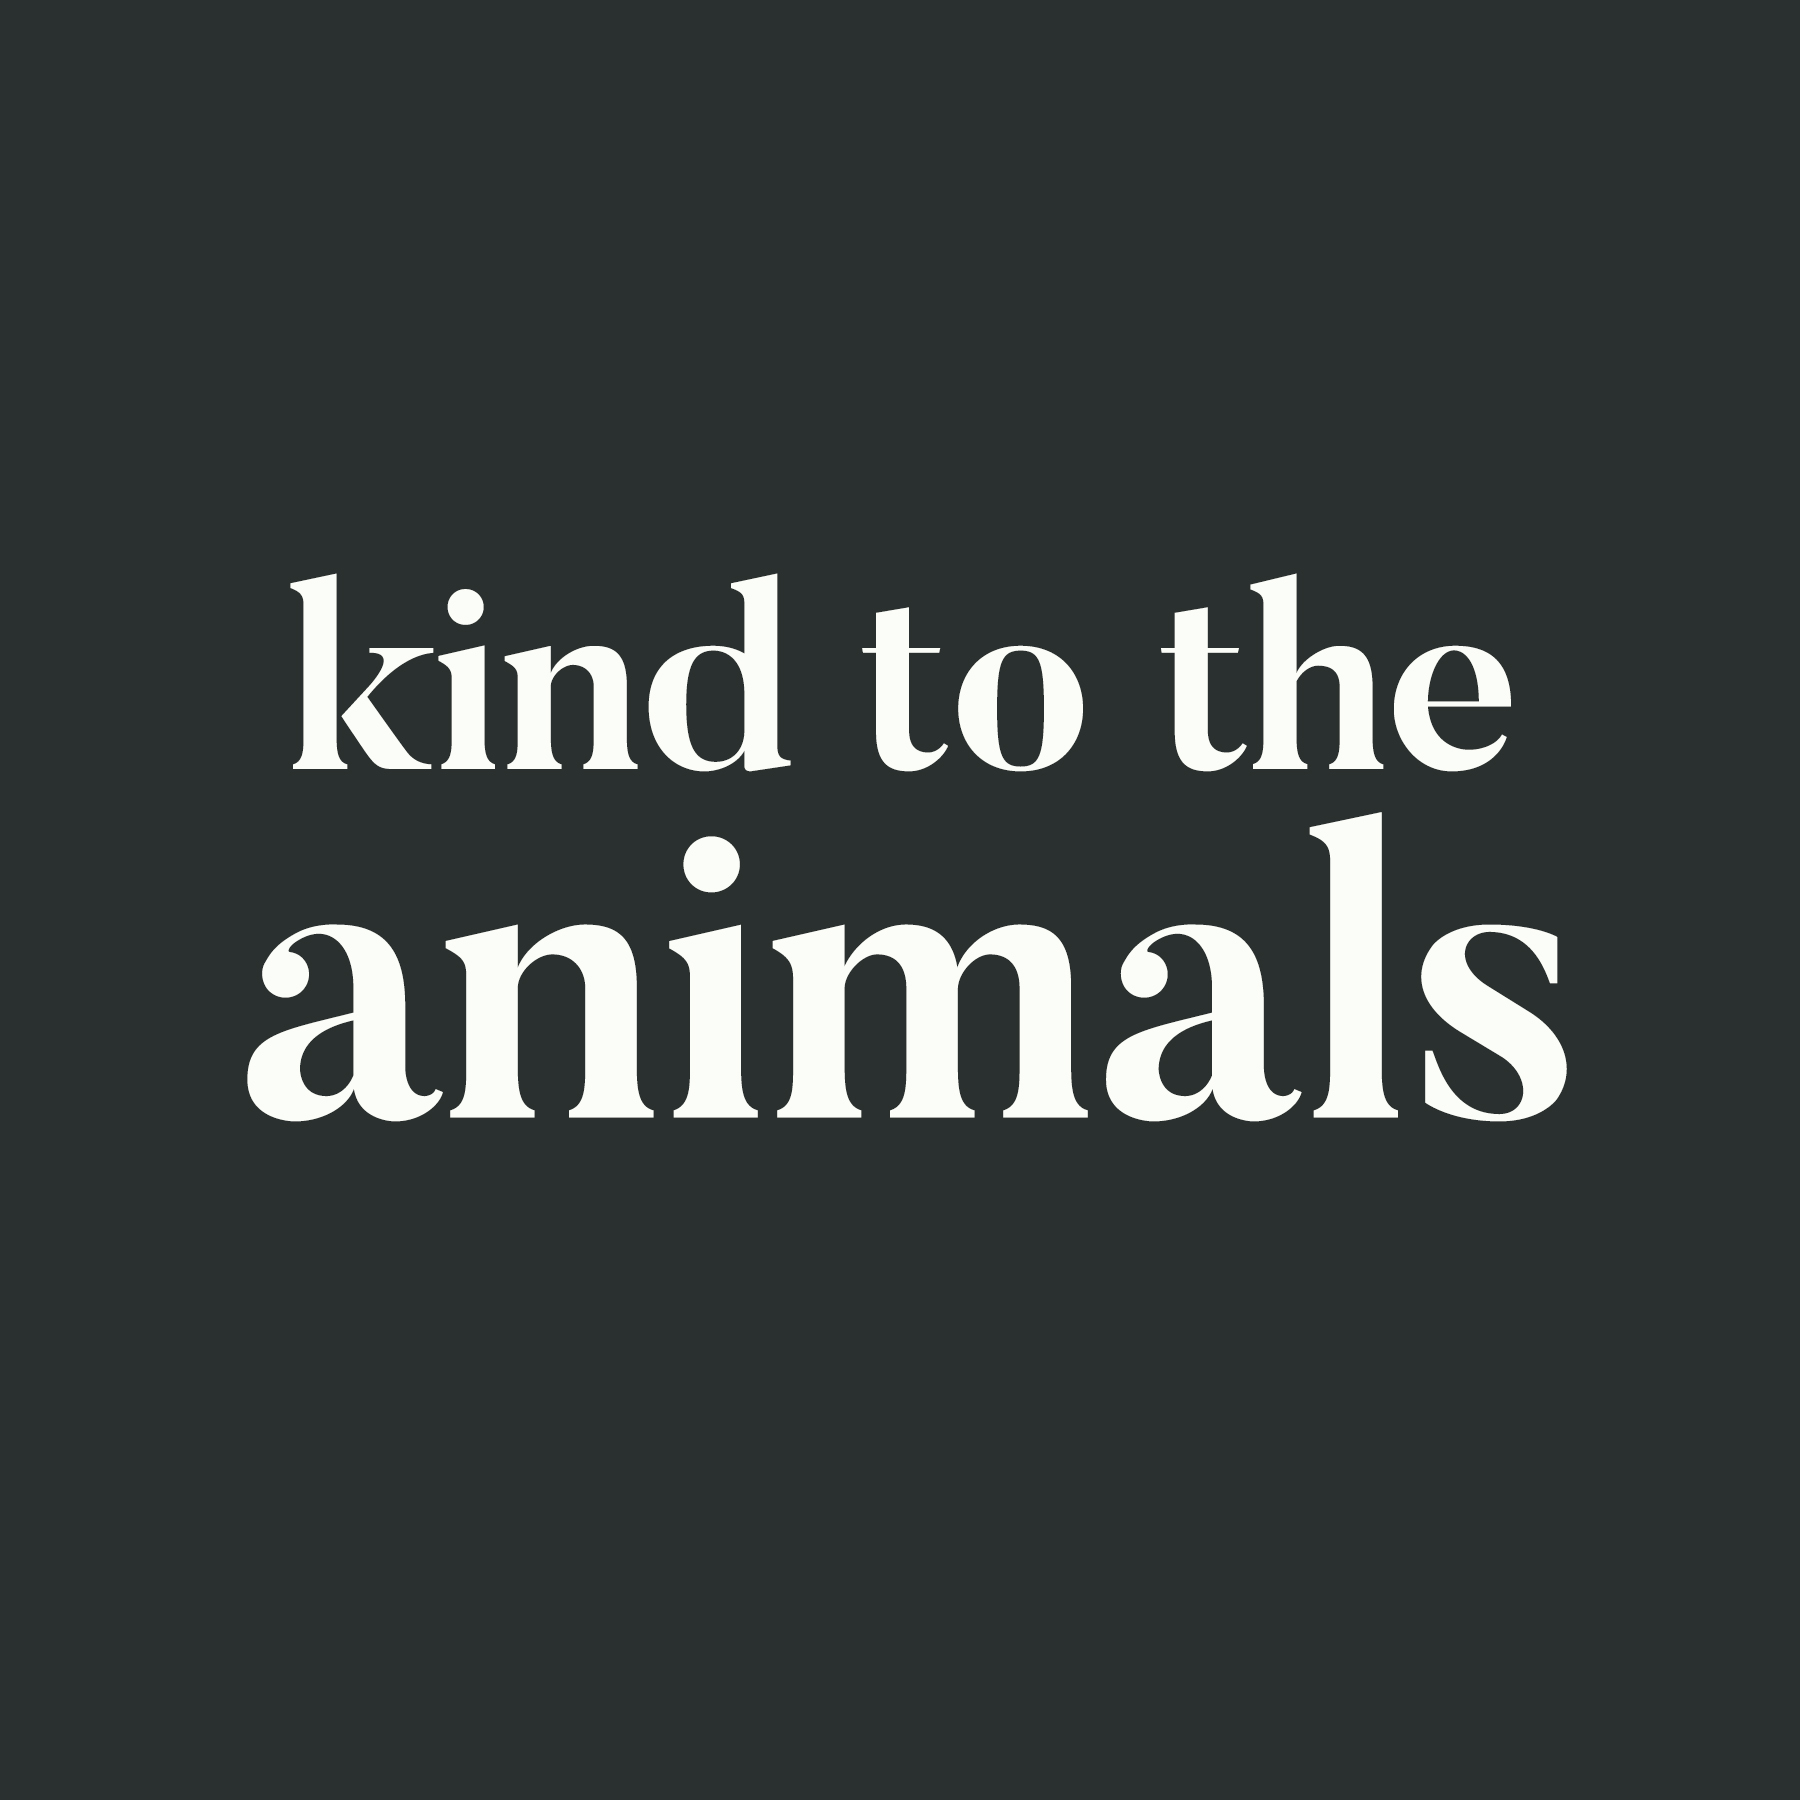 kind to the animals